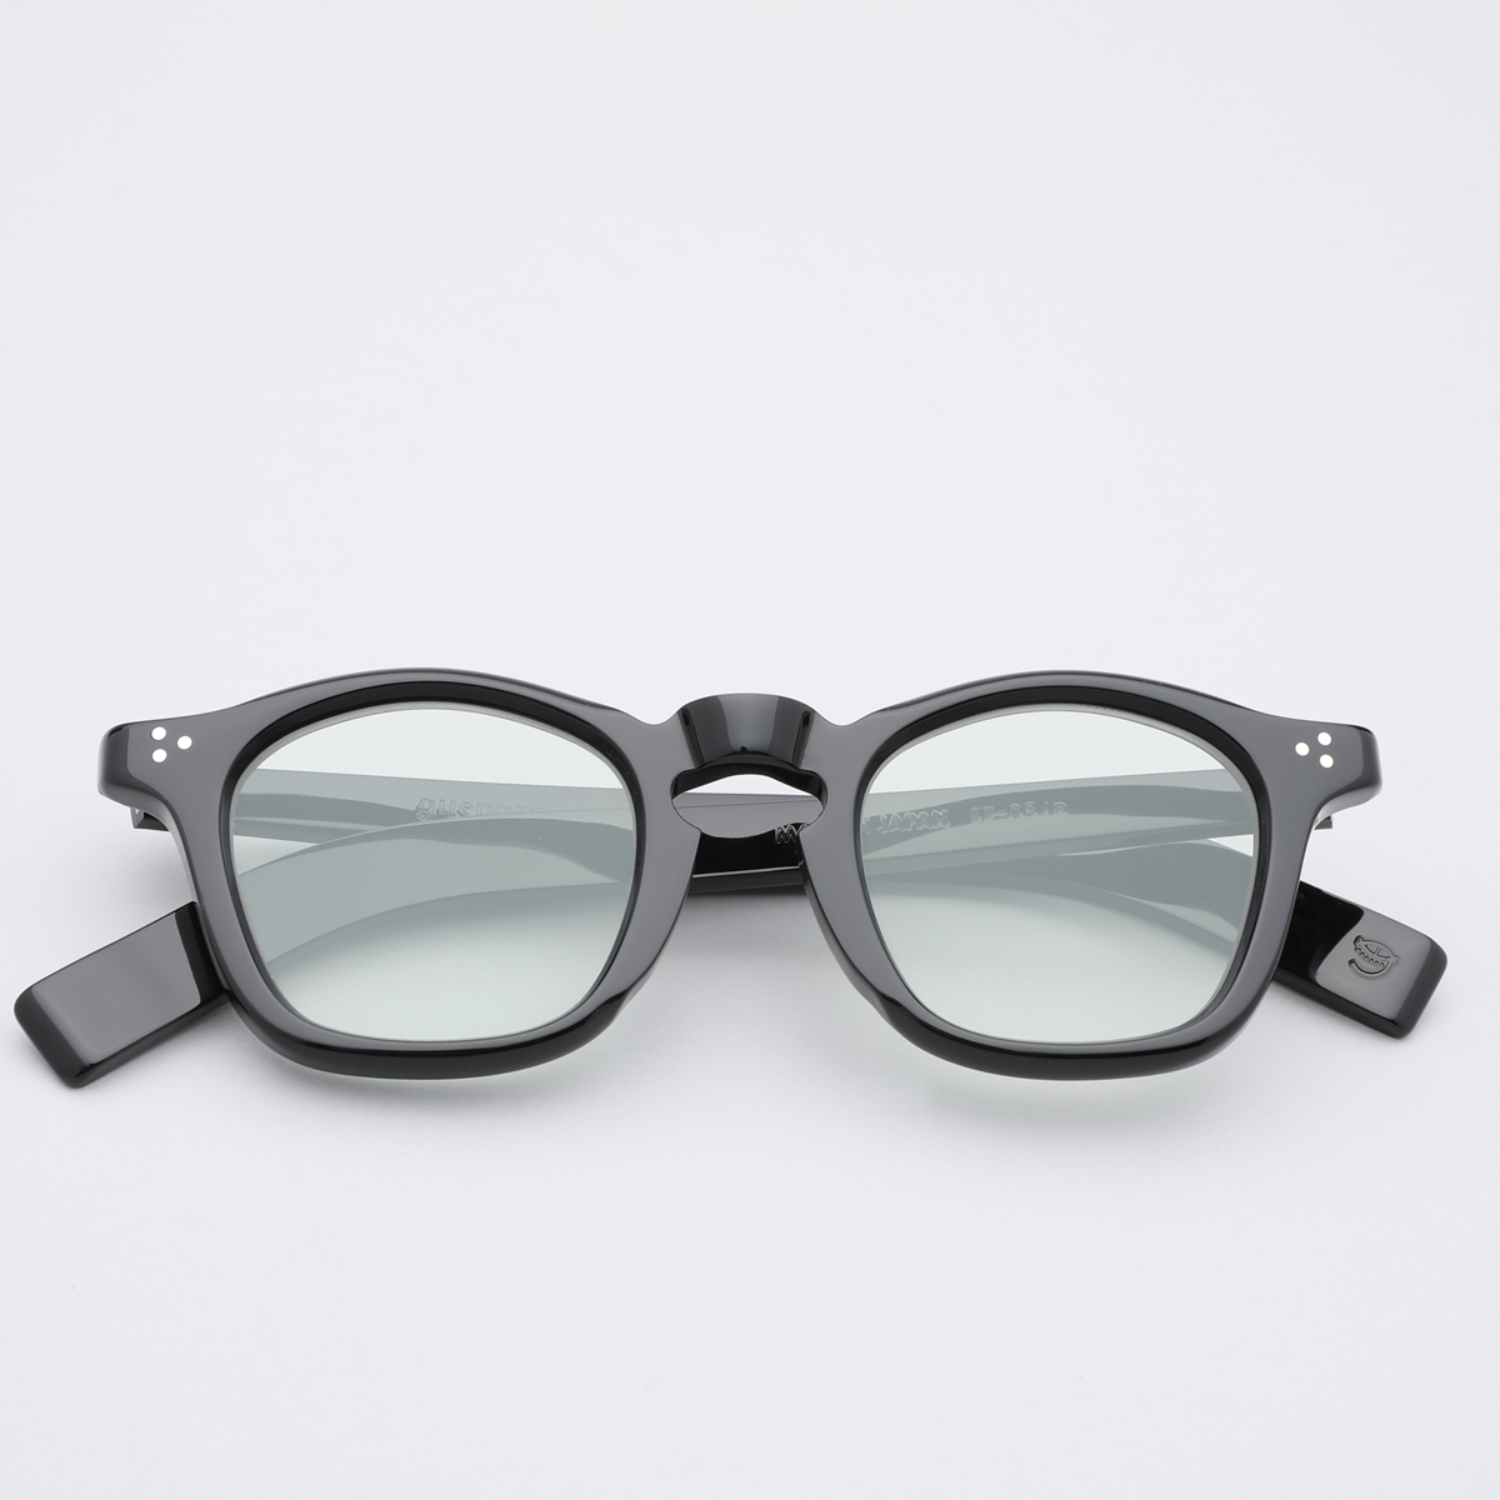 [규파드선글라스] GP05 N(Light green flat tint Lens) (guépard)